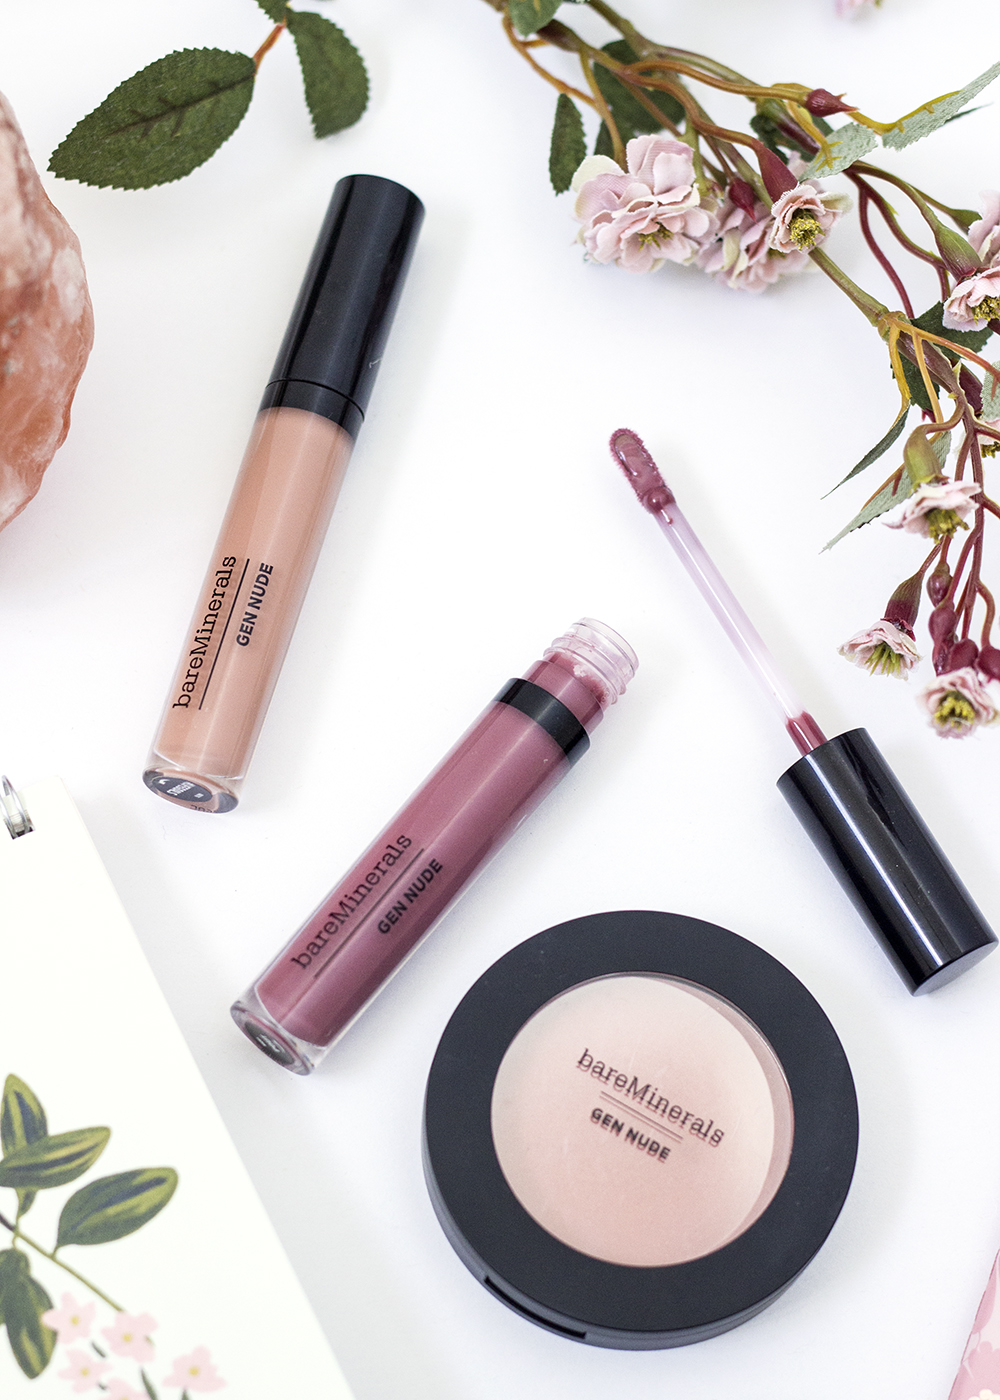 BareMinerals Patent Lip Lacquers in Pout and #Lifegoals